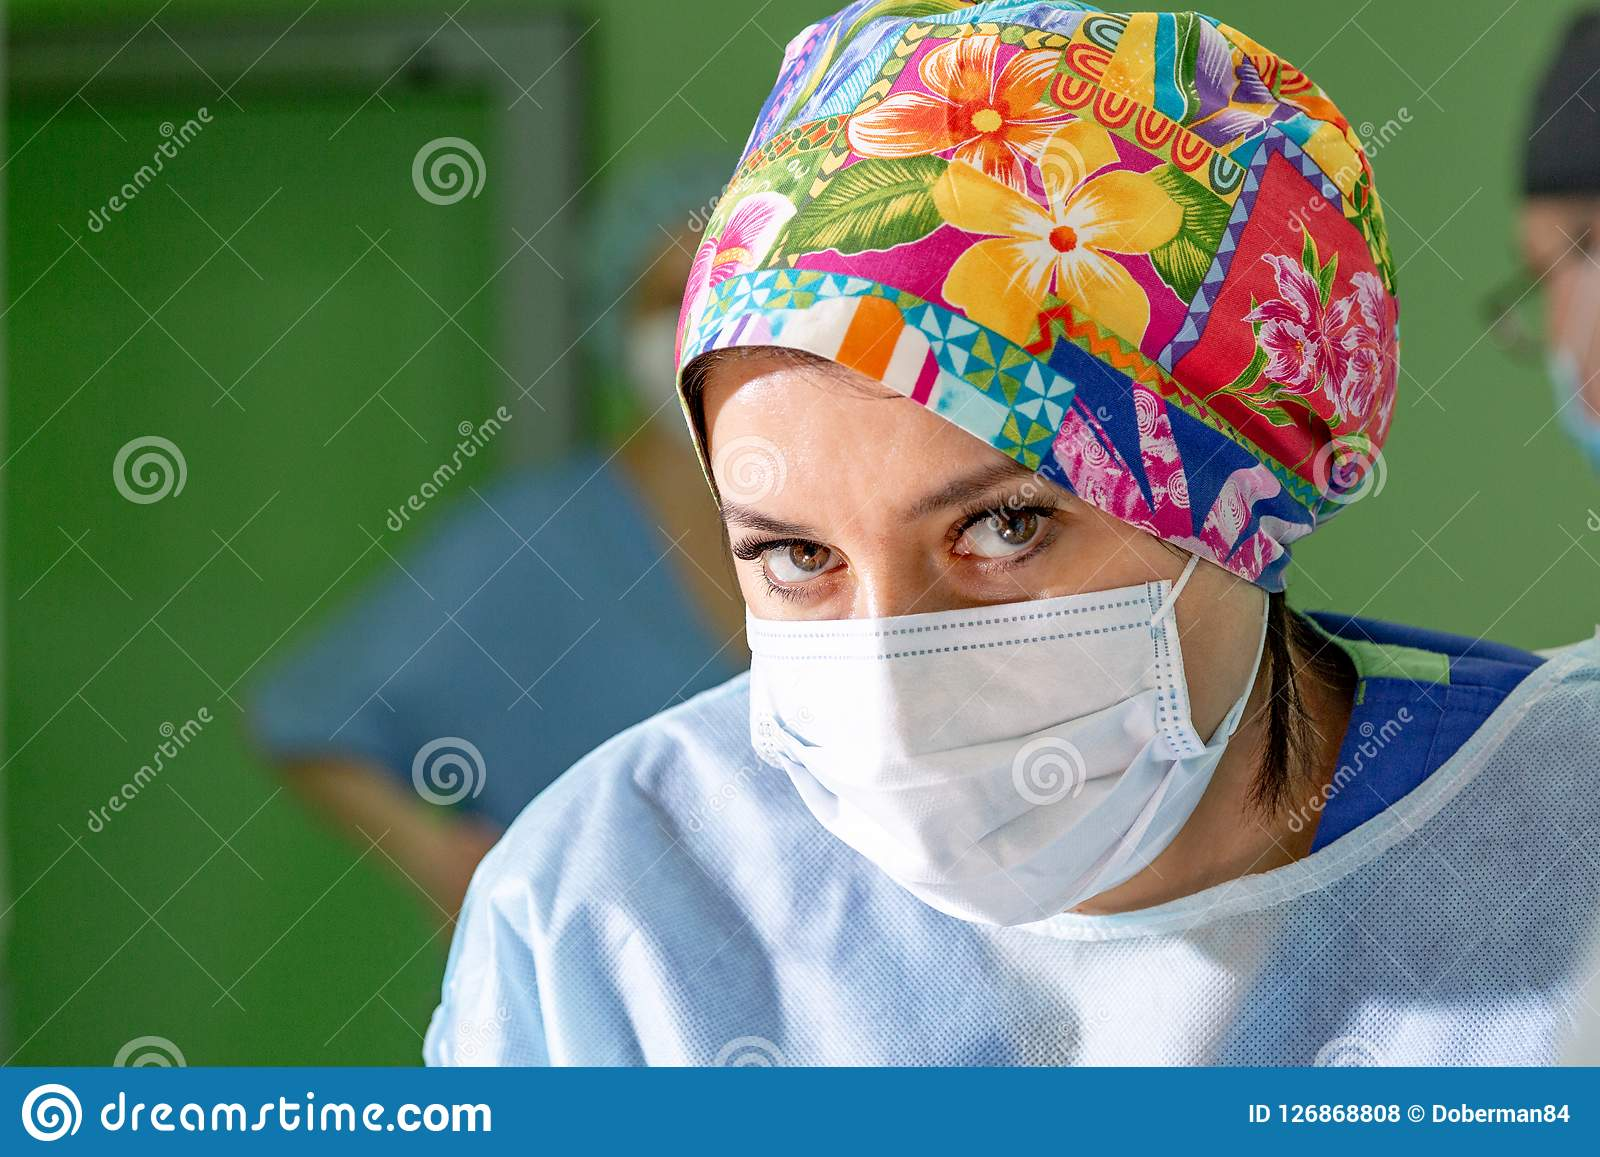 Female surgeon doctor wearing protective mask and hat during the operation. Healthcare, medical education, emergency